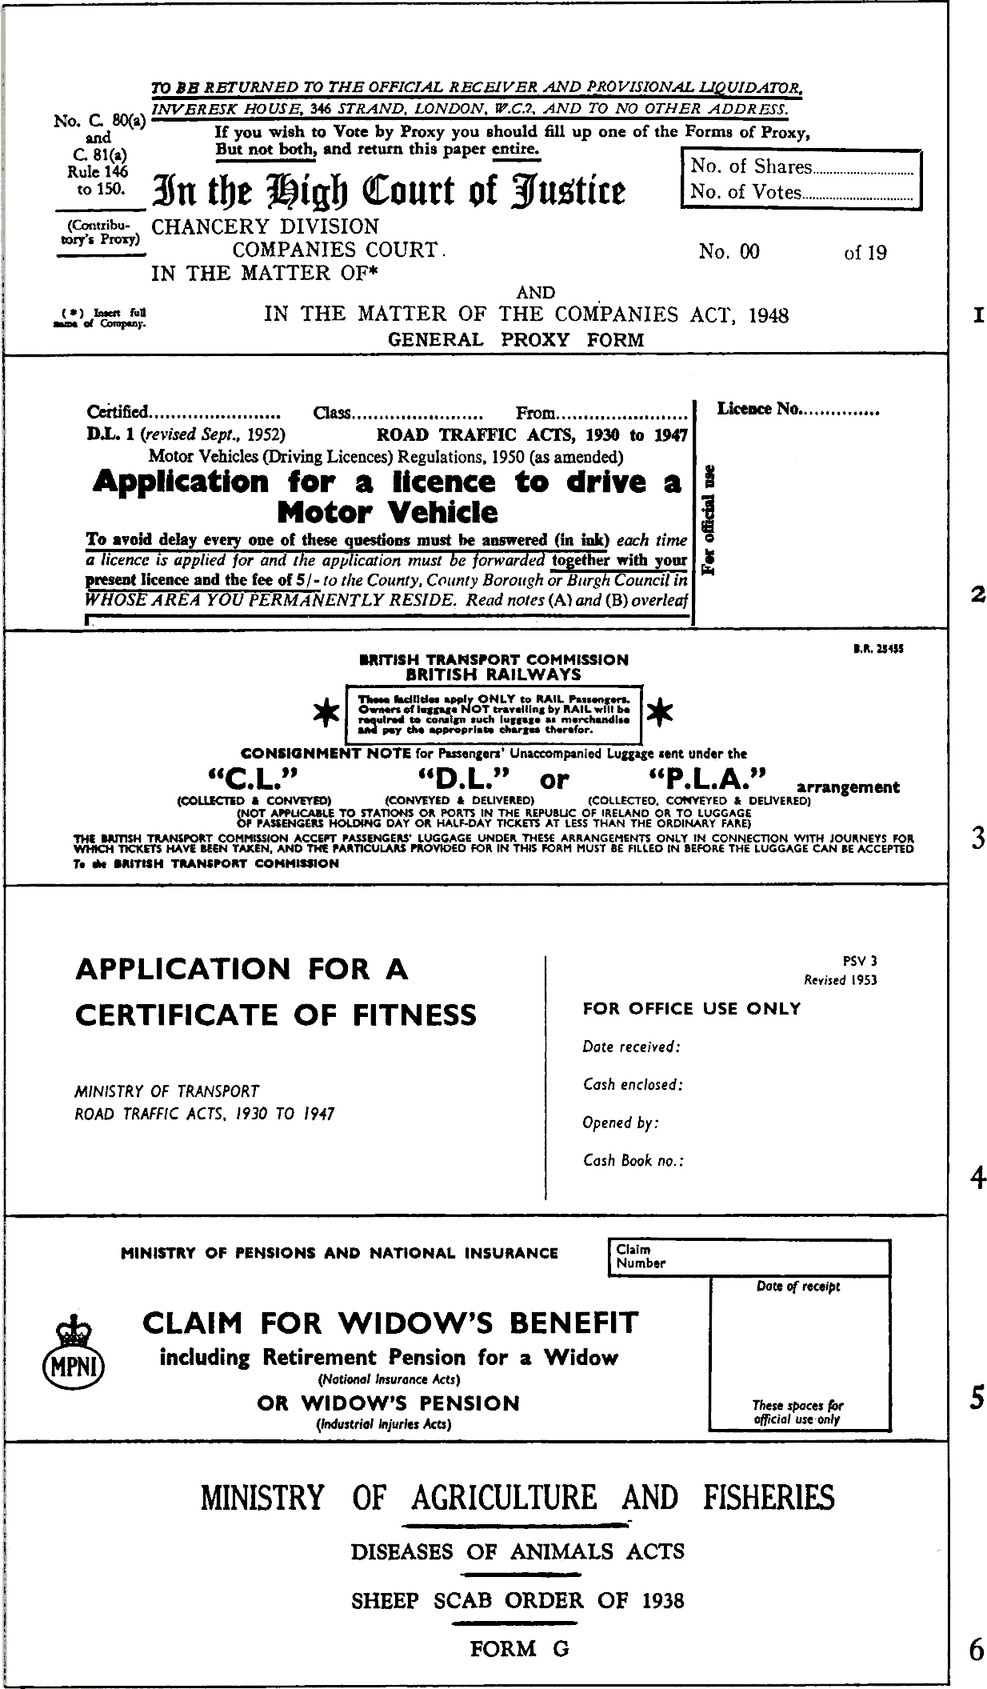 """6 examples of form headings. First three sections have lots of information next to each other with no spacing between them. For example, Application for a licence to drive a Motor Vehicle right next to """"Motor Vehicles (Driving Licences) Regulations, 1950 (as amended)"""". Fourth and fifth section has minimal information with propr spacing so it's easier to understand them. For example: Application for a certificate of Fitness next to Ministry of Transport Road Traffic ACTS, 1930 to 194. Section 6 reads """"Ministry of Agriculture And Fisheries, Diseases of Animals ACTS, Sheep Scab Order of 1938, Form G"""""""